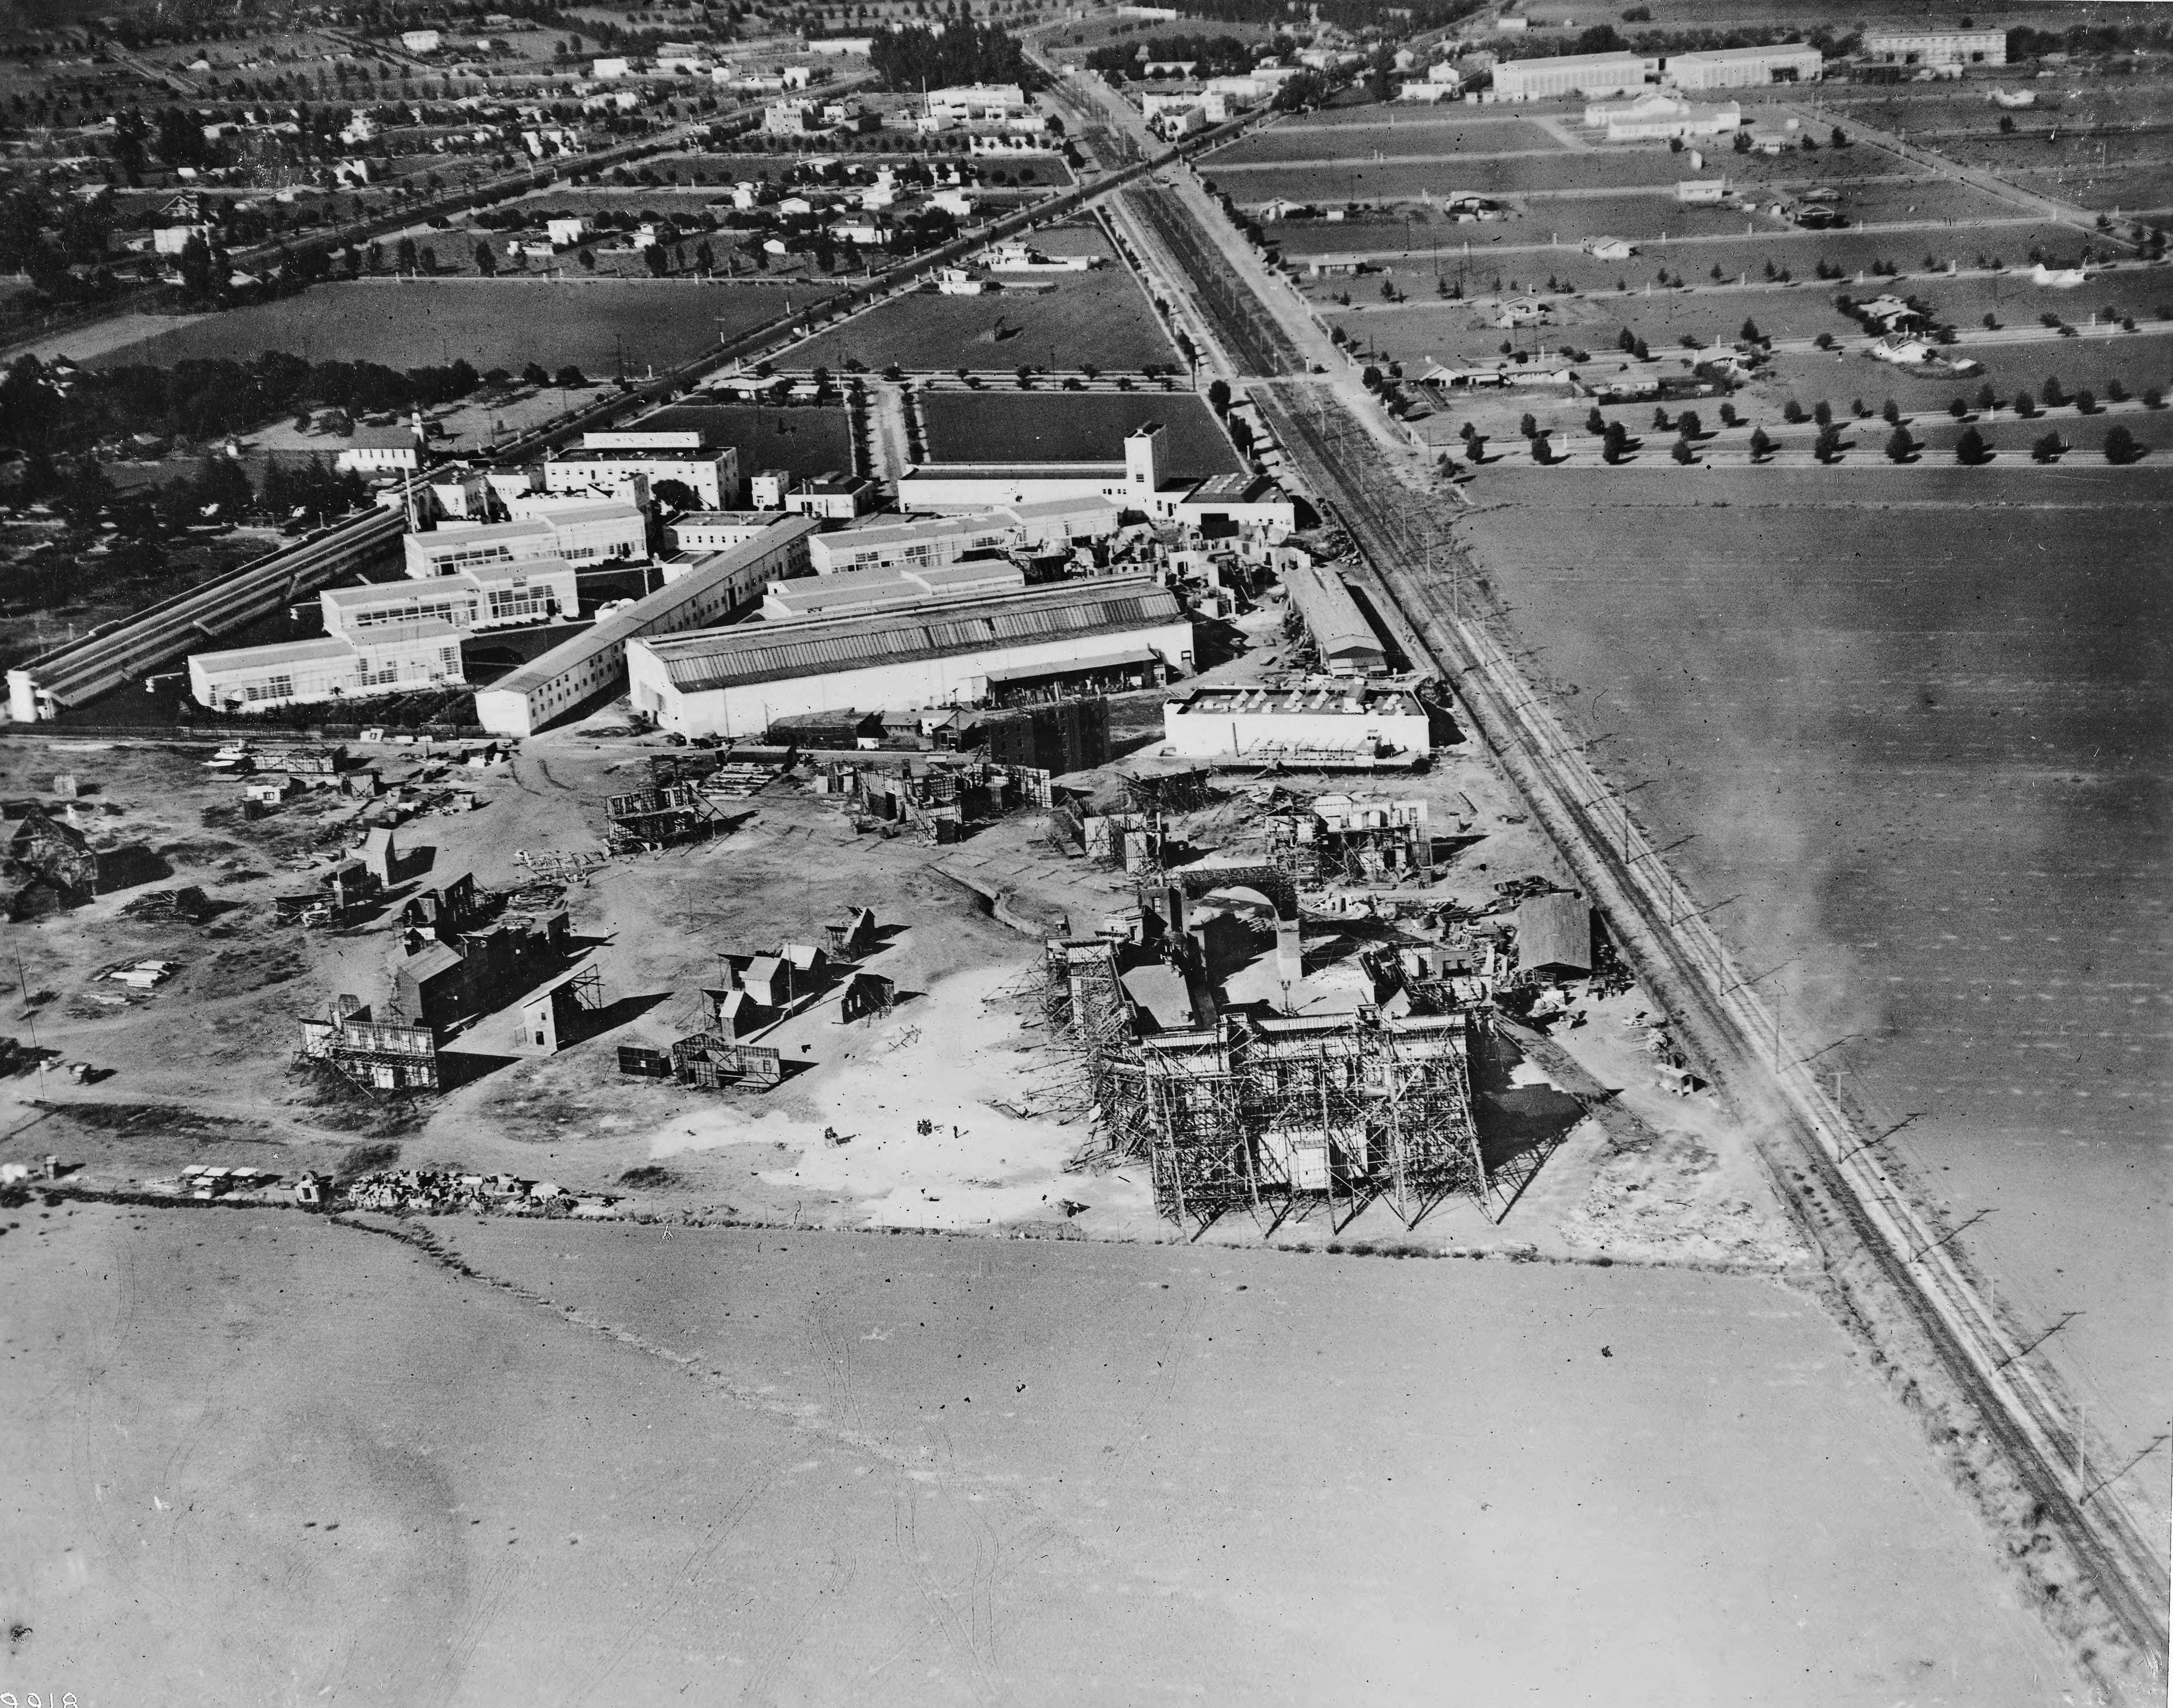 Aerial view of Goldwyn Studios, Culver City, 1919